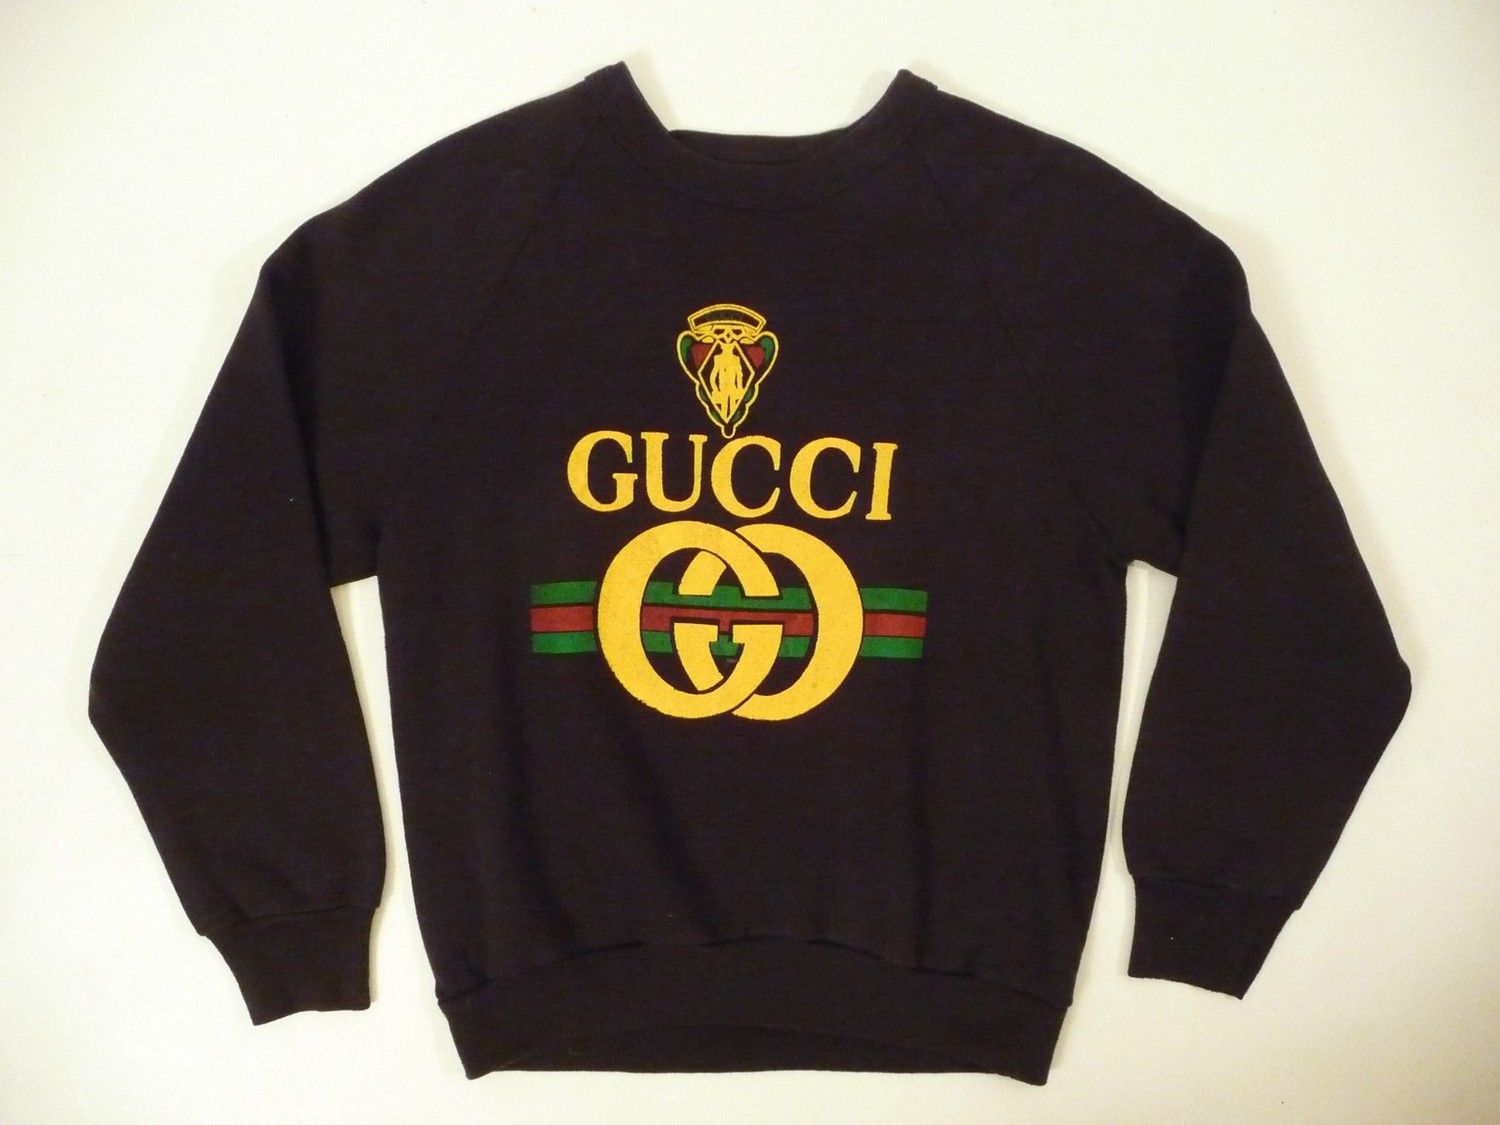 30271d794a Gucci Rappers like Eric B. and Rakim loved Gucci. Who could forget how  everyone